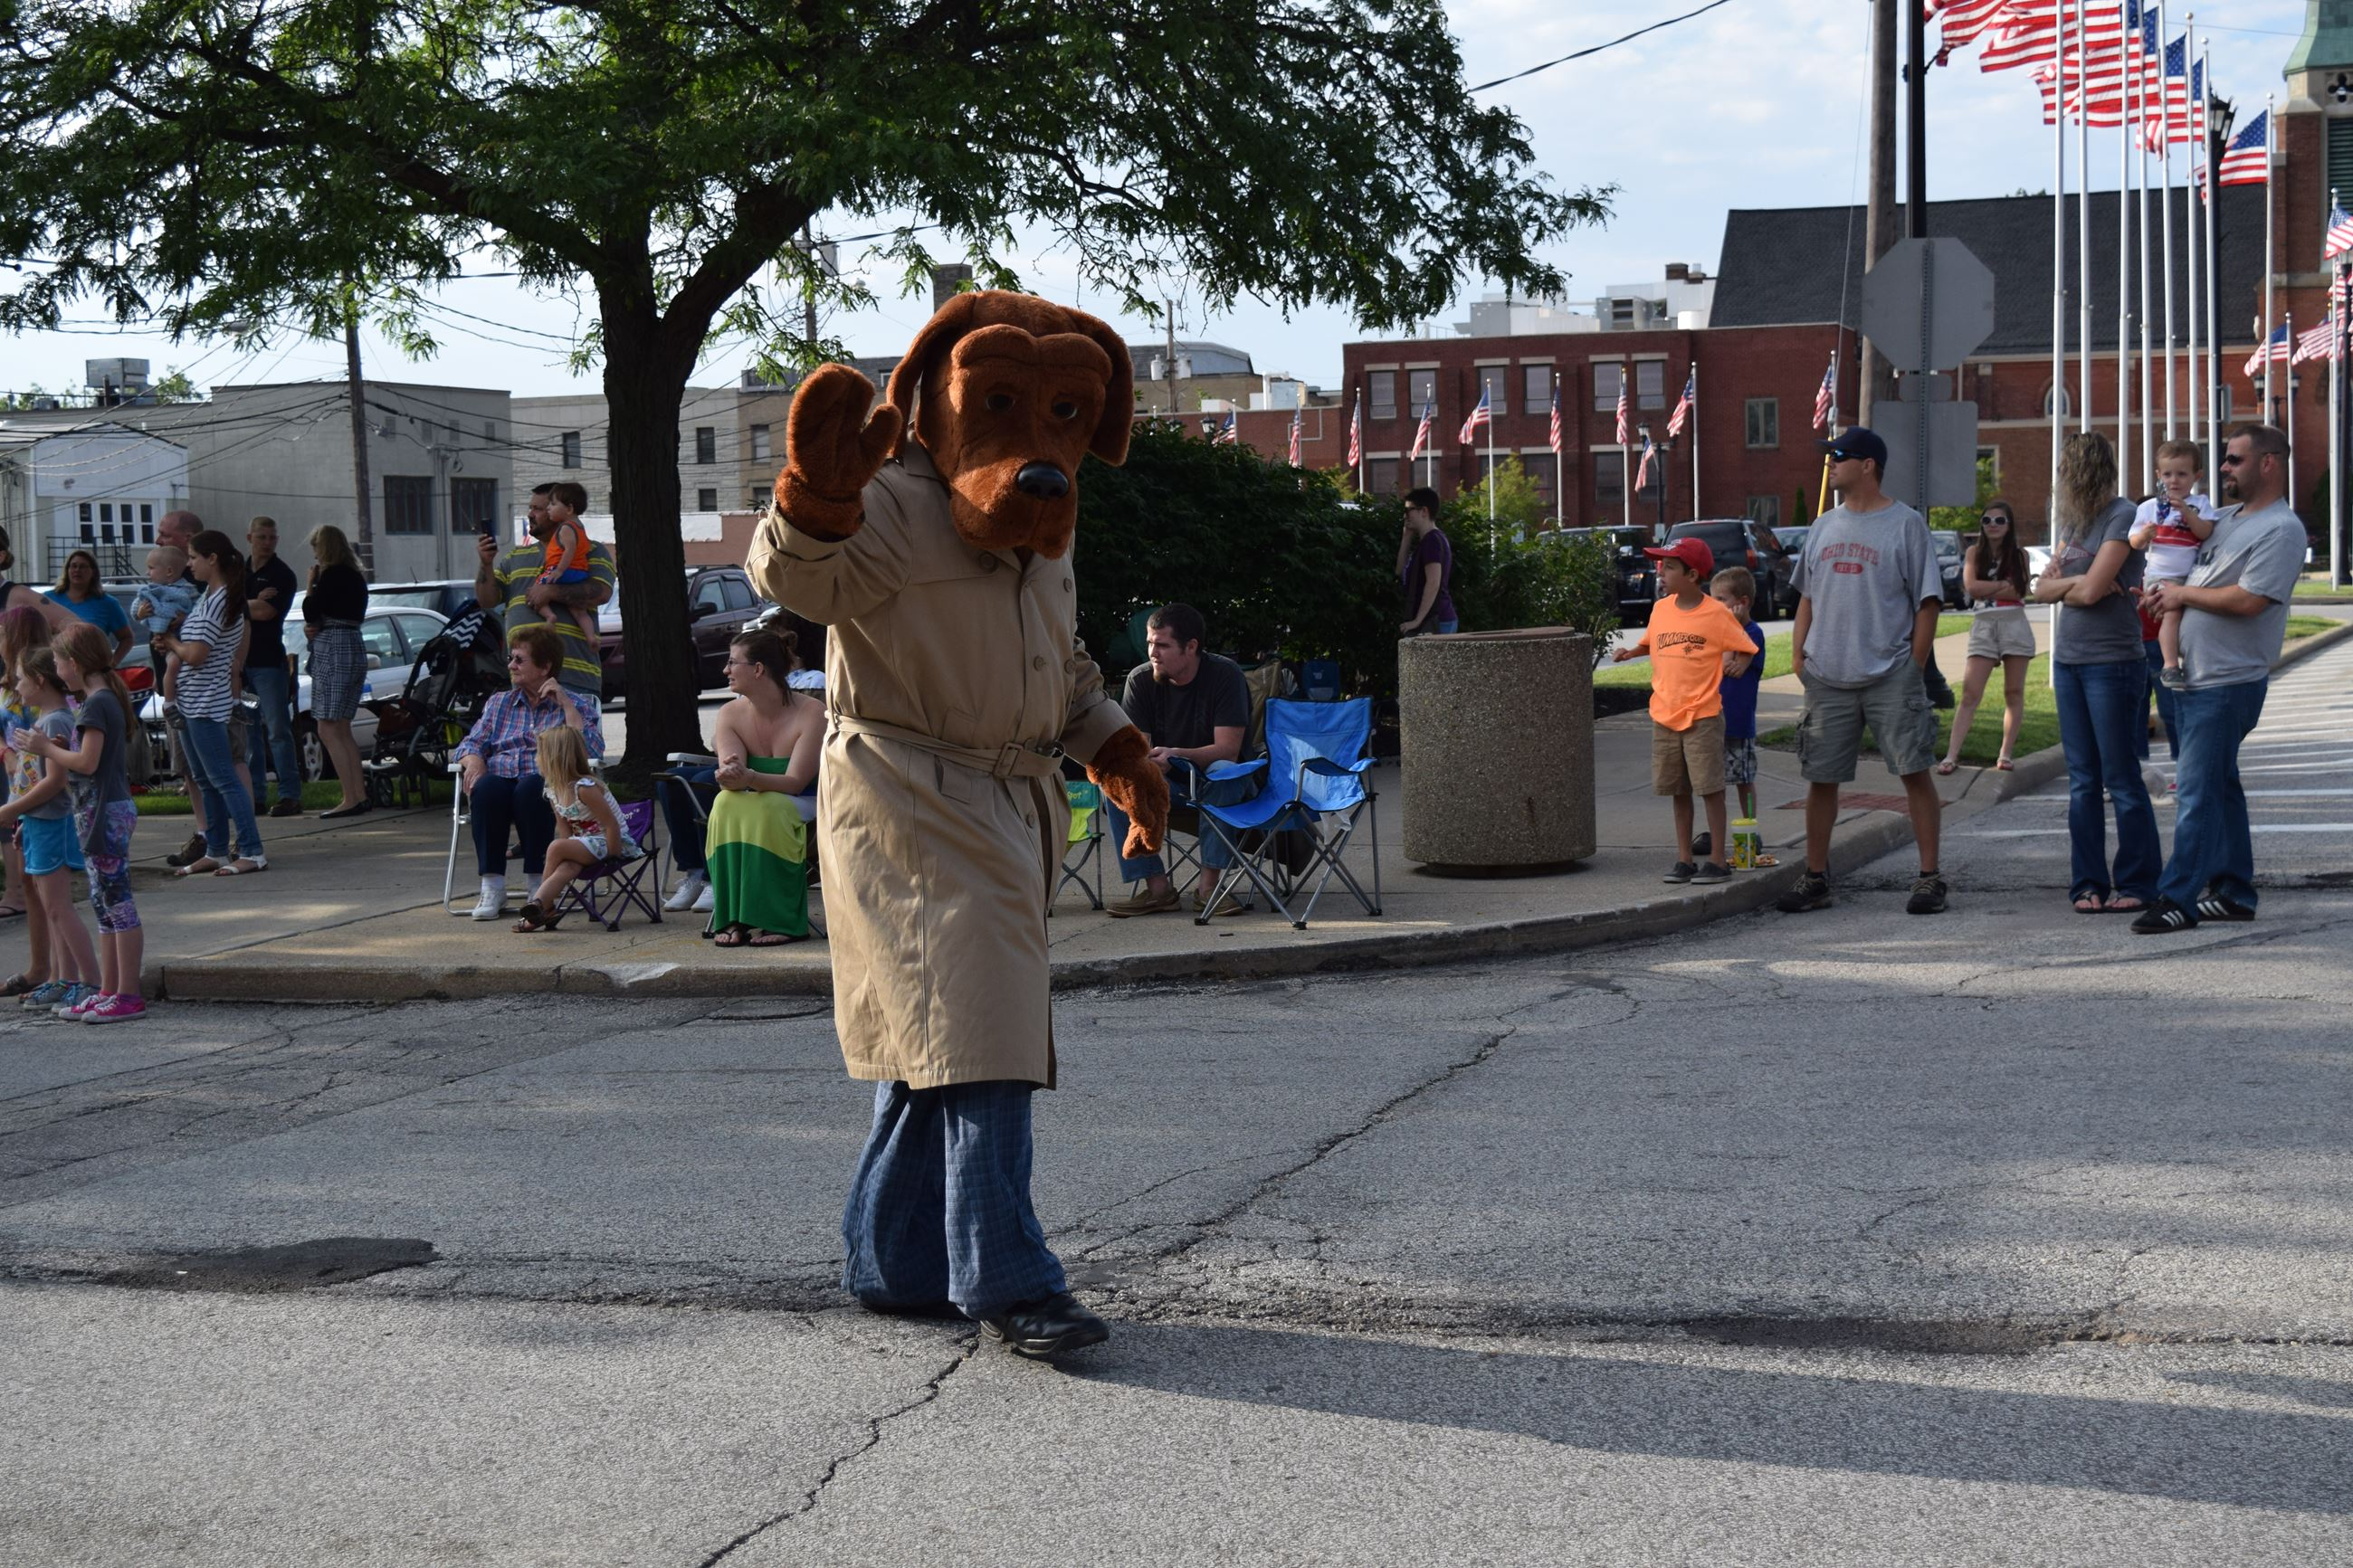 McGruff walking in Parade